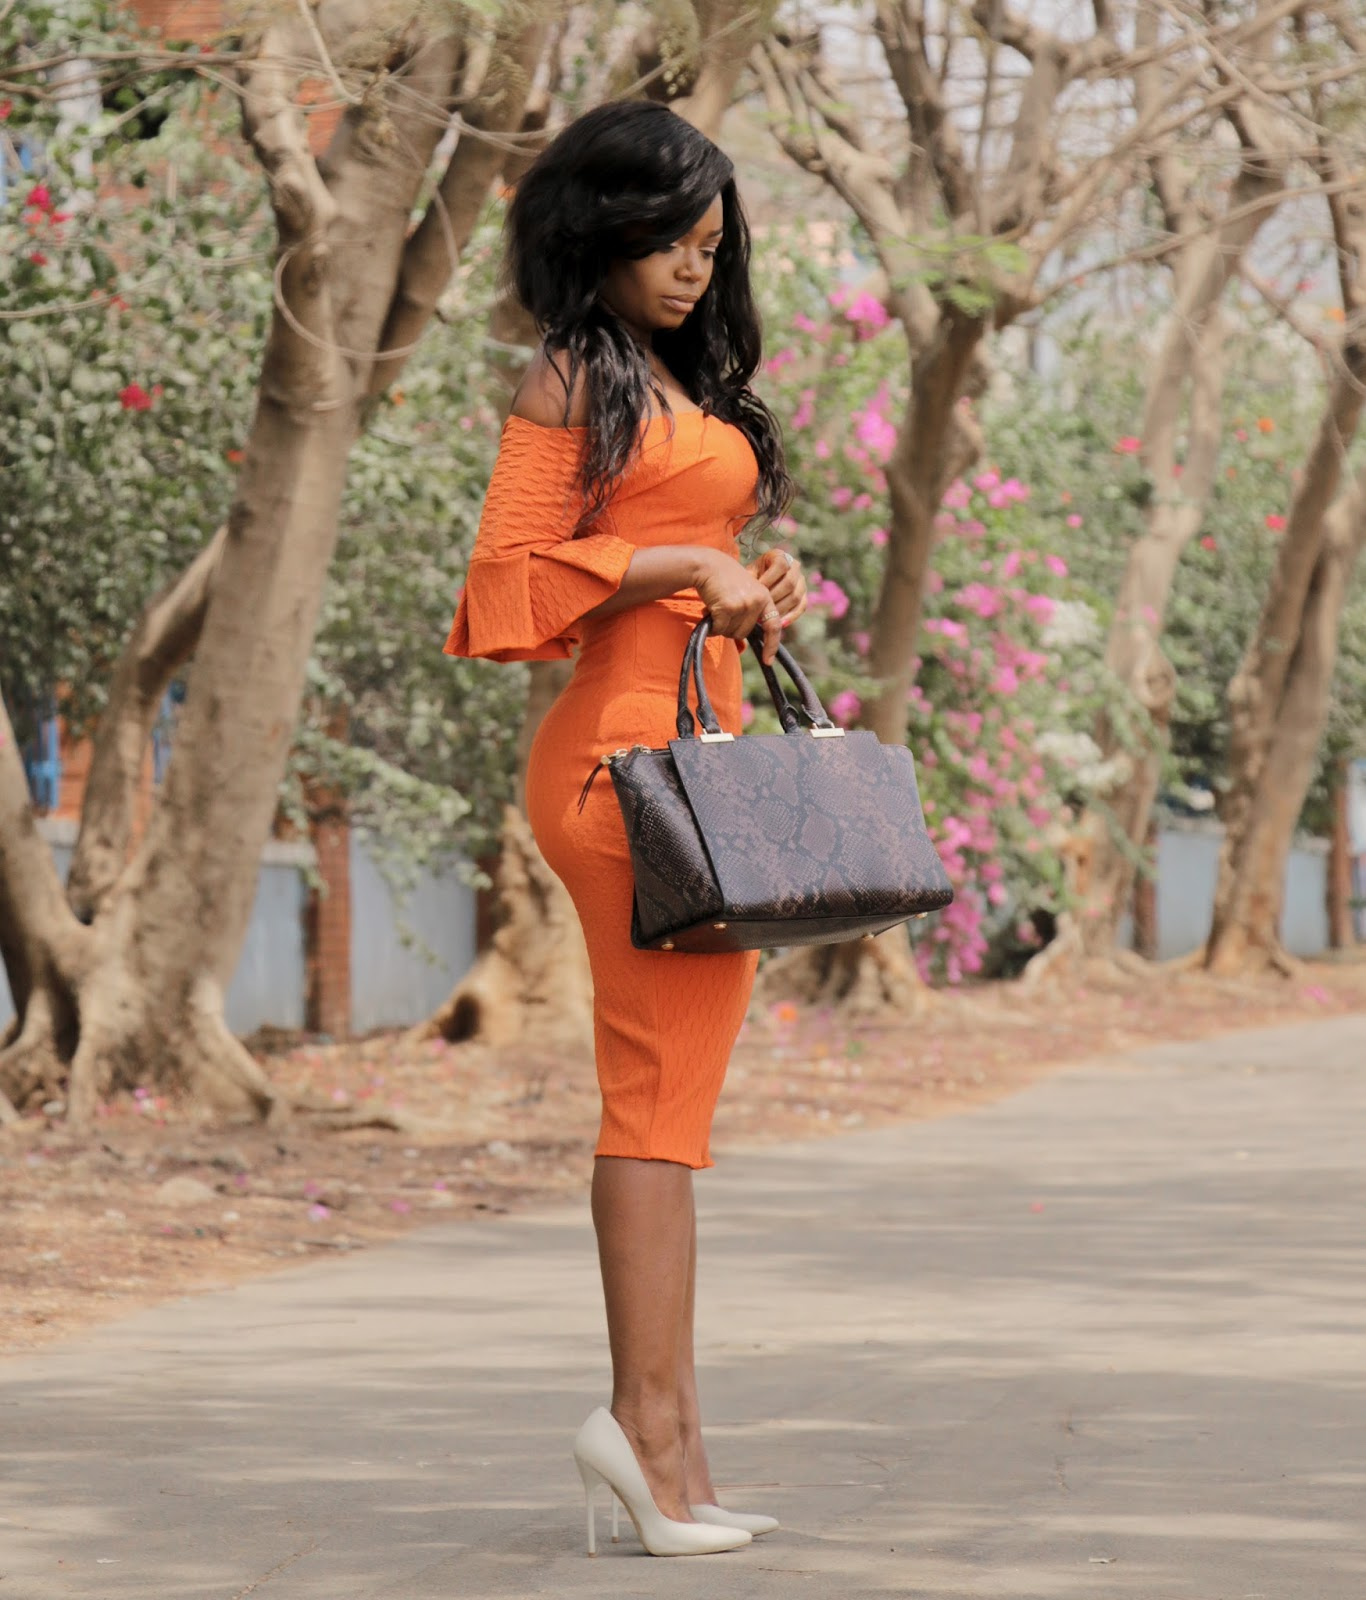 THE FLYGERIAN - Henri Bendel Snake Print Bag from The Flygerian and Orange Off shoulder dress form Kitau